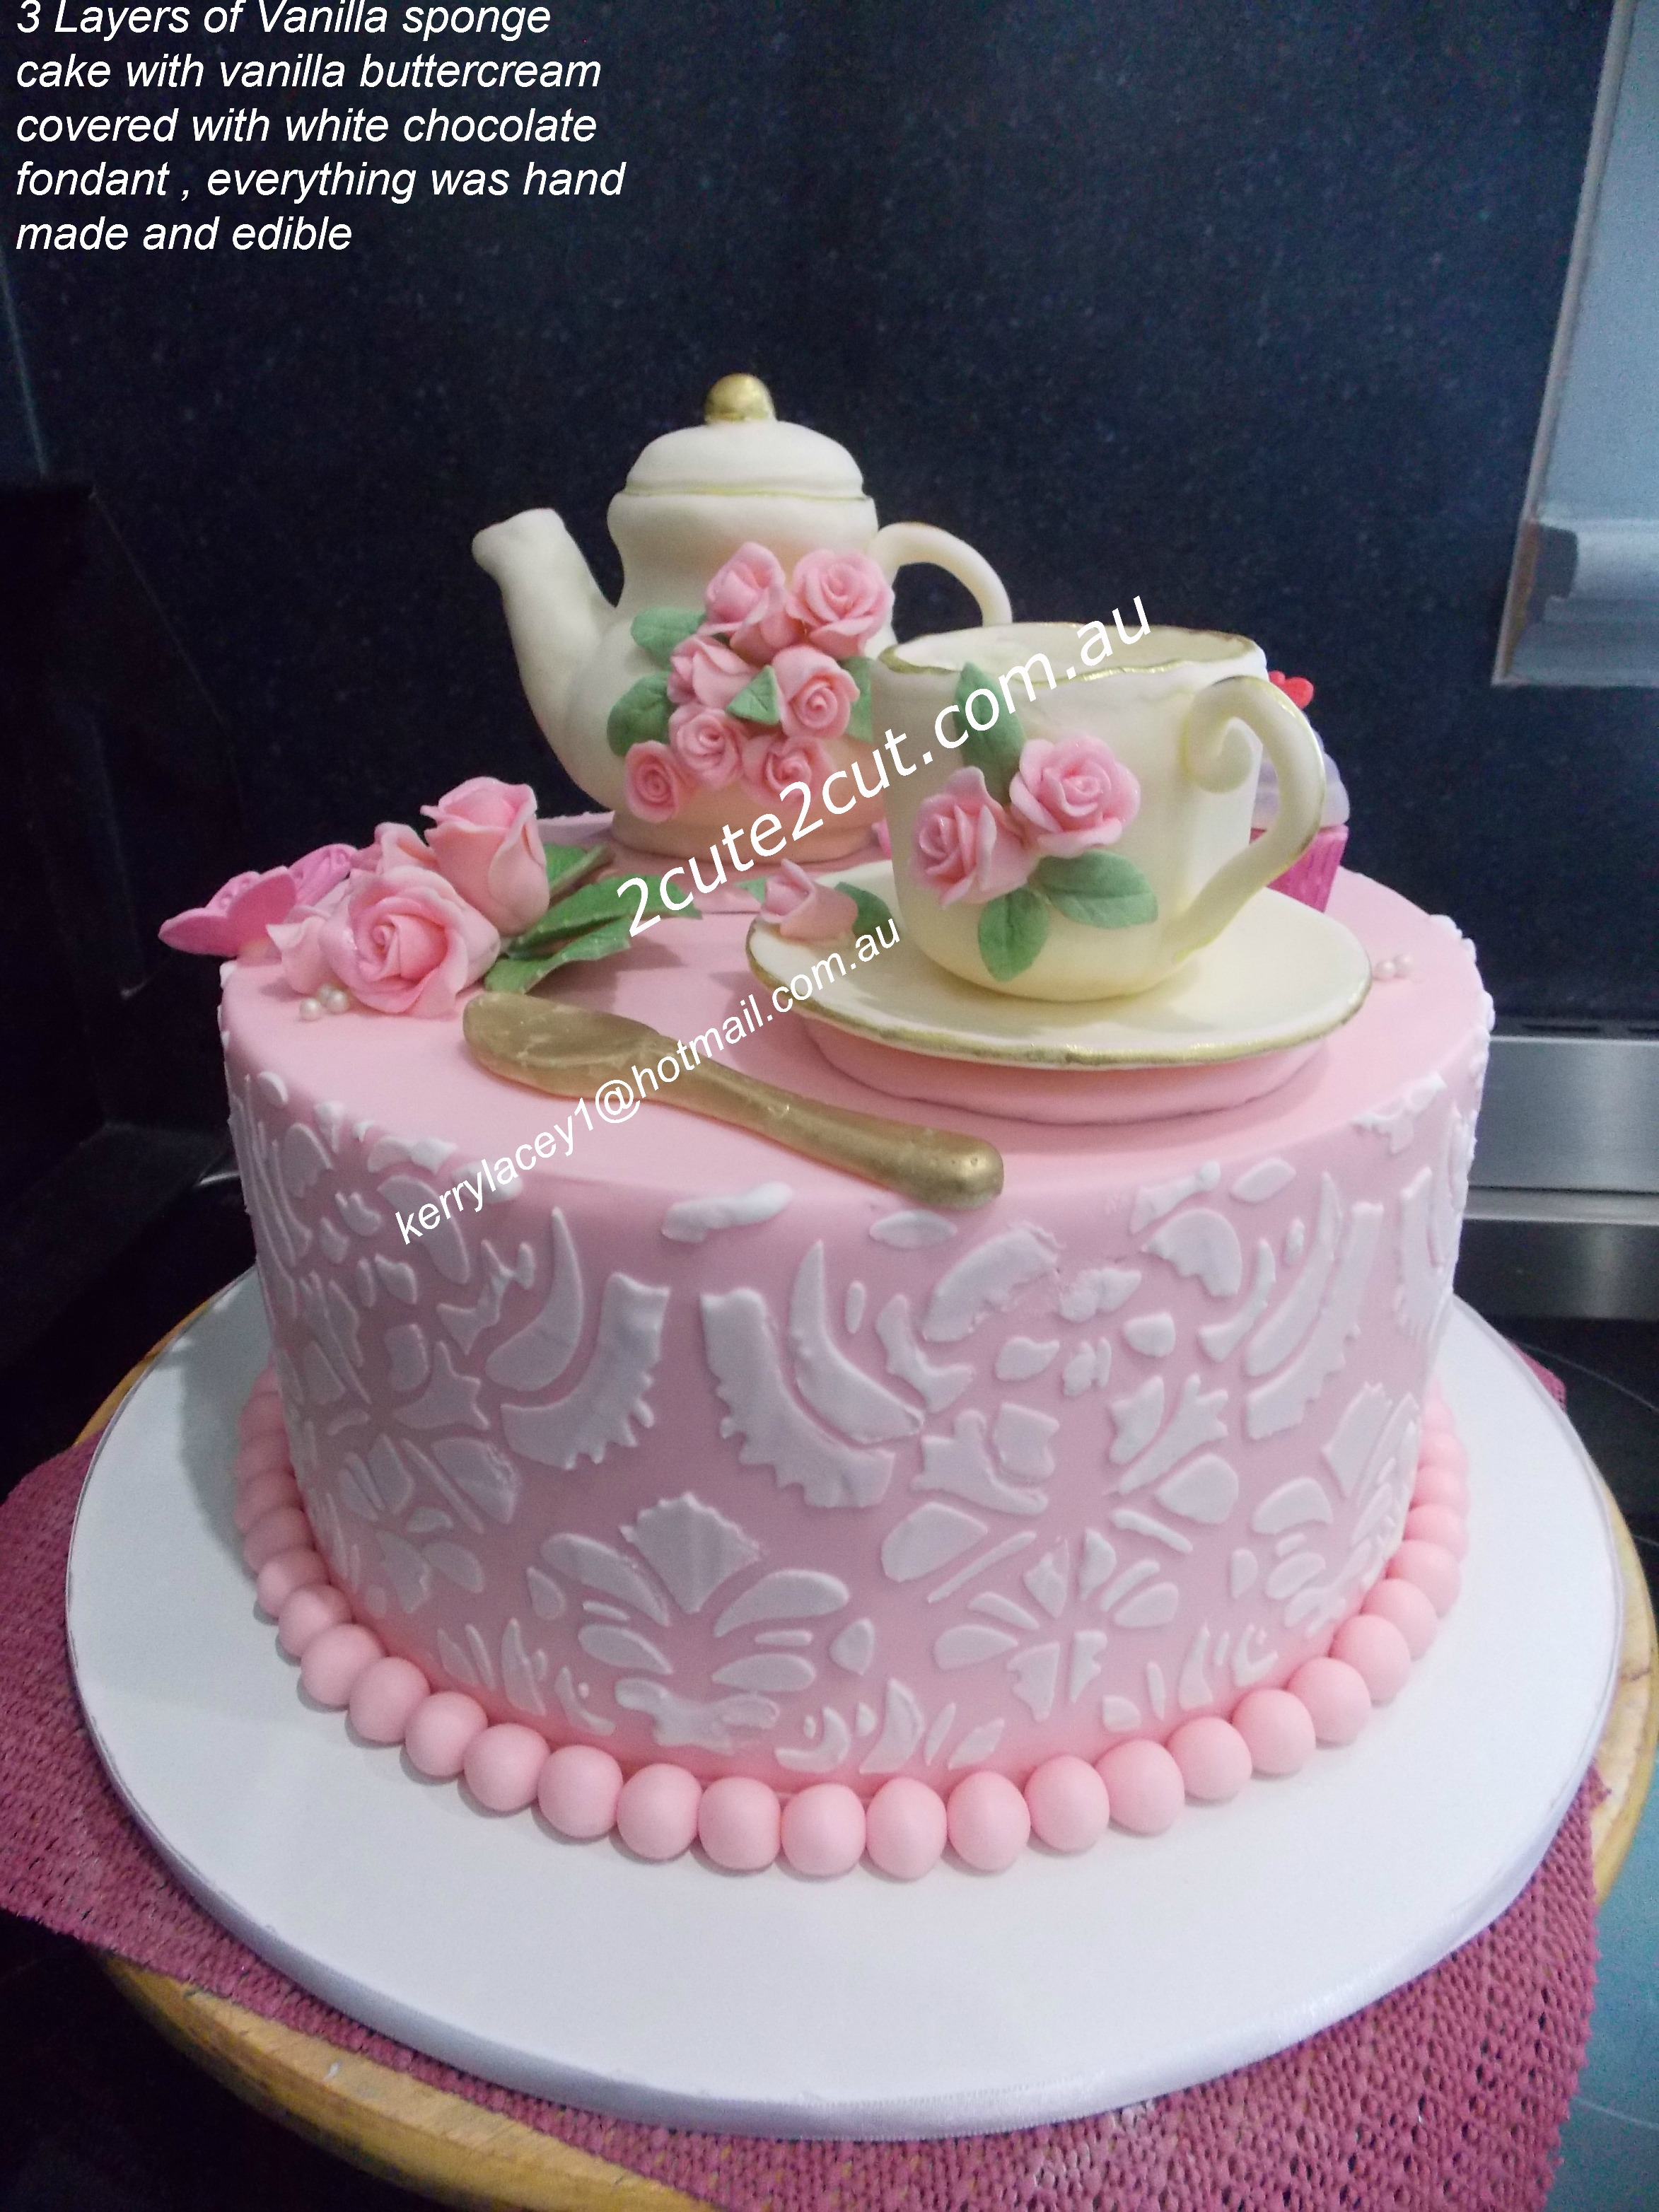 2cute2cut Com Au Handmade Cakes Made With Love